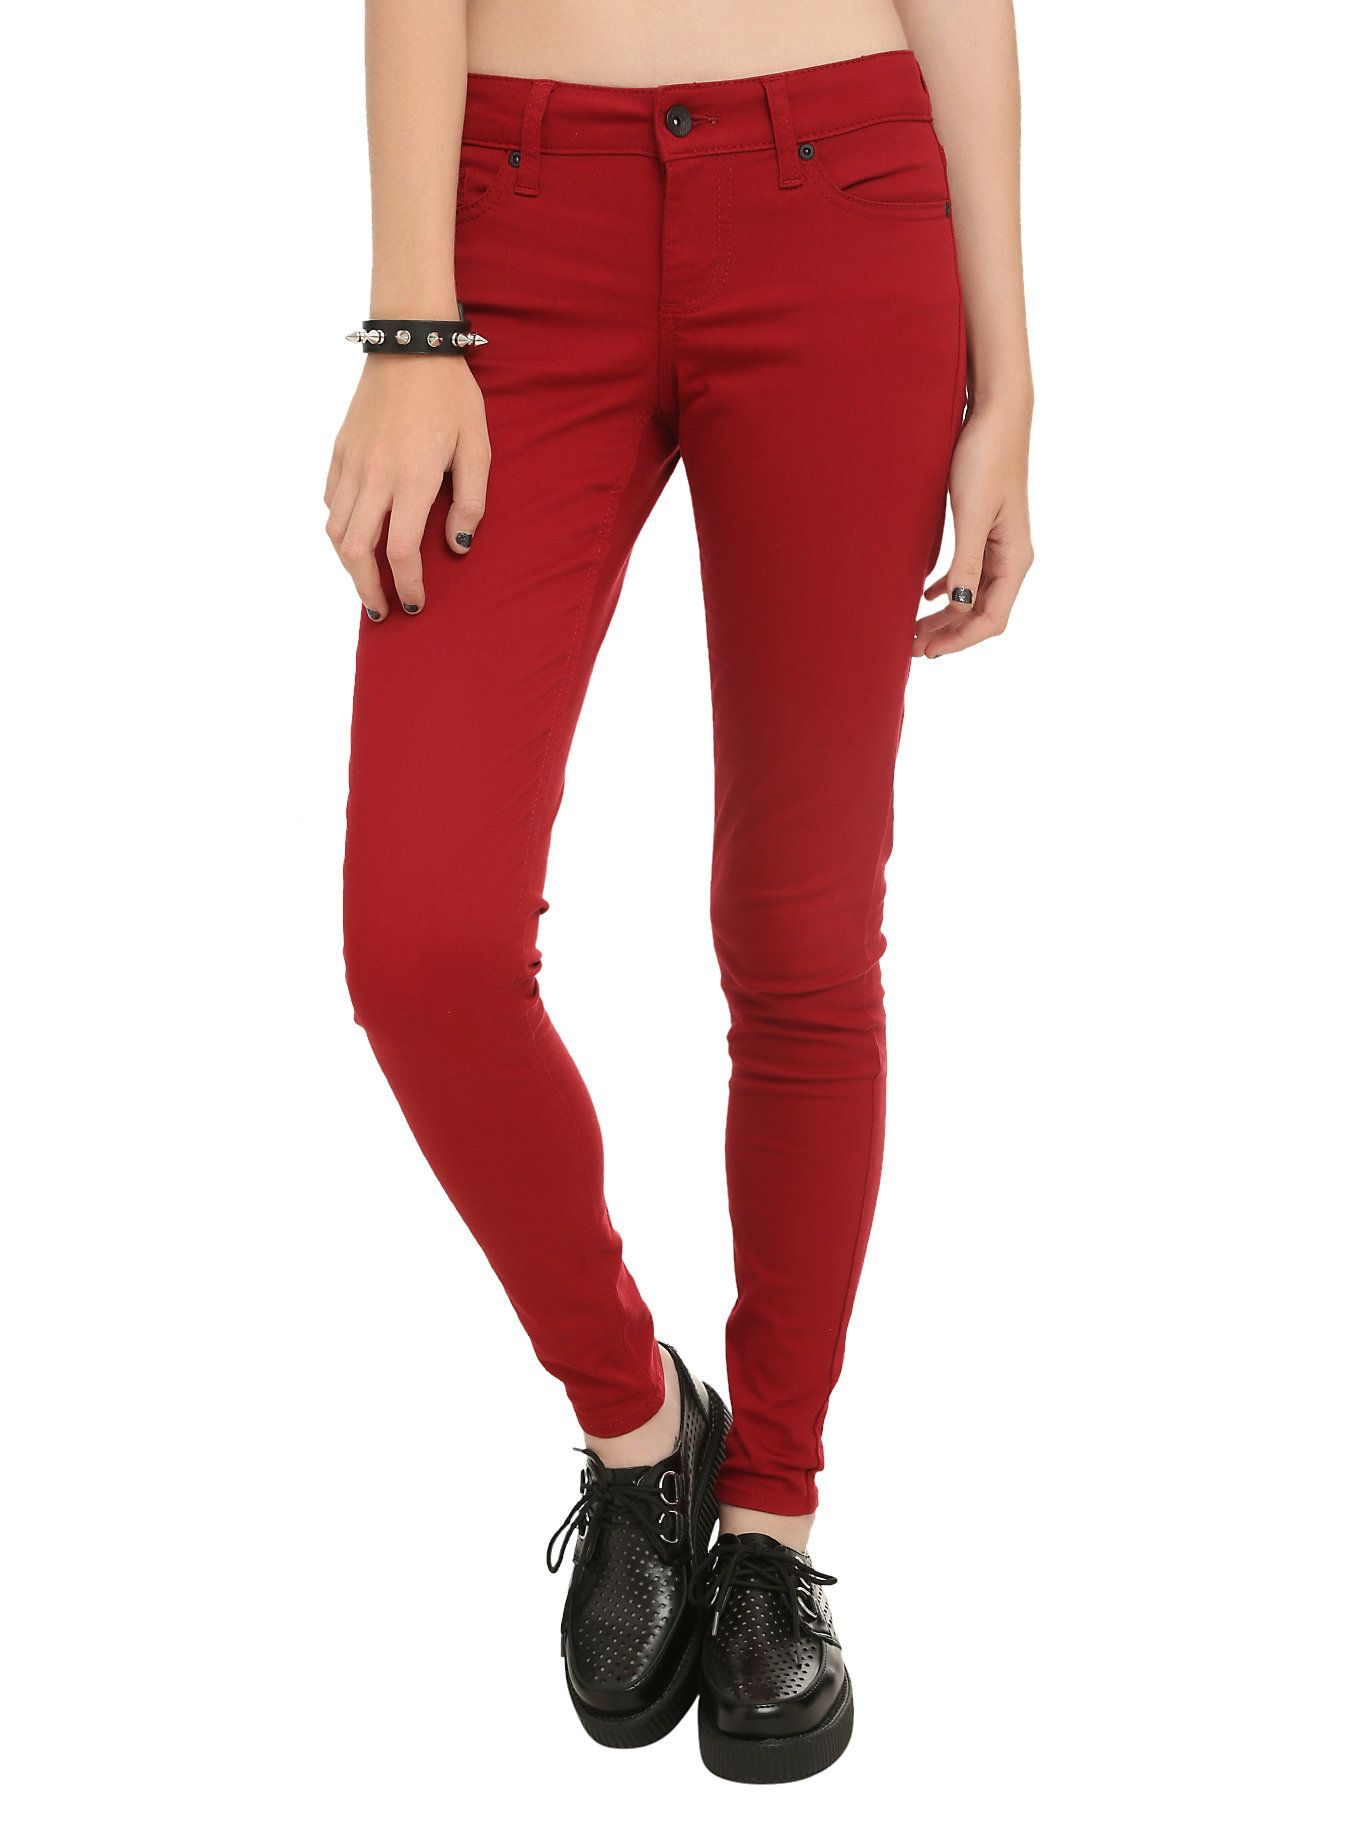 These solid red skinny denim jeans features five pocket styling ...